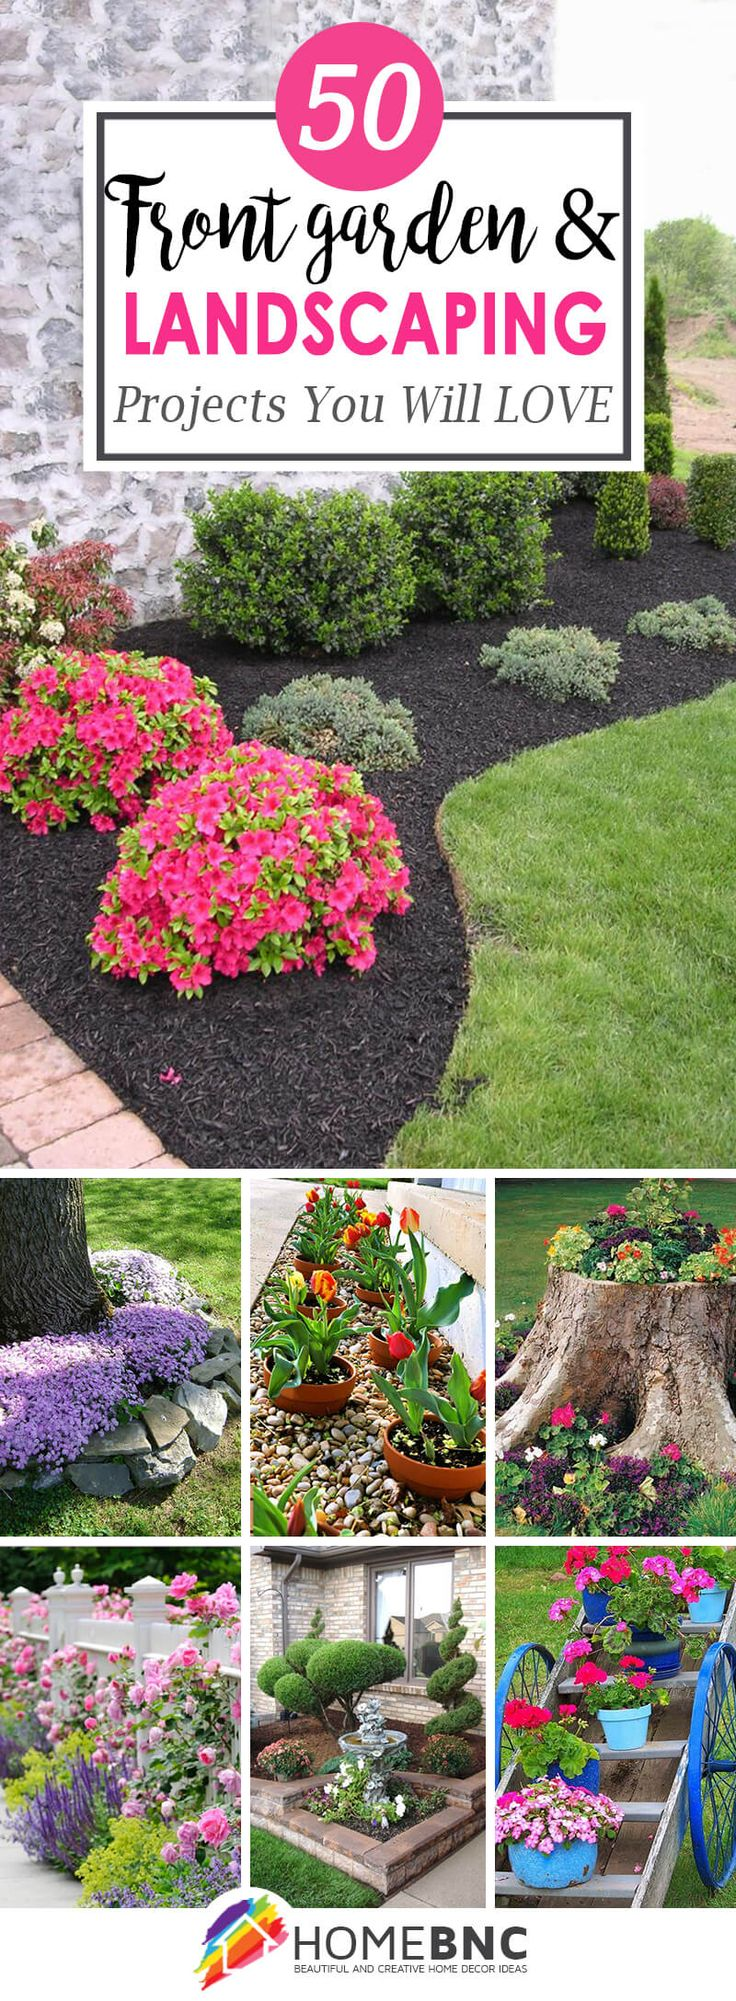 50 brilliant front garden and landscaping projects youll love front garden ideas - Landscape Design Ideas For Front Yard